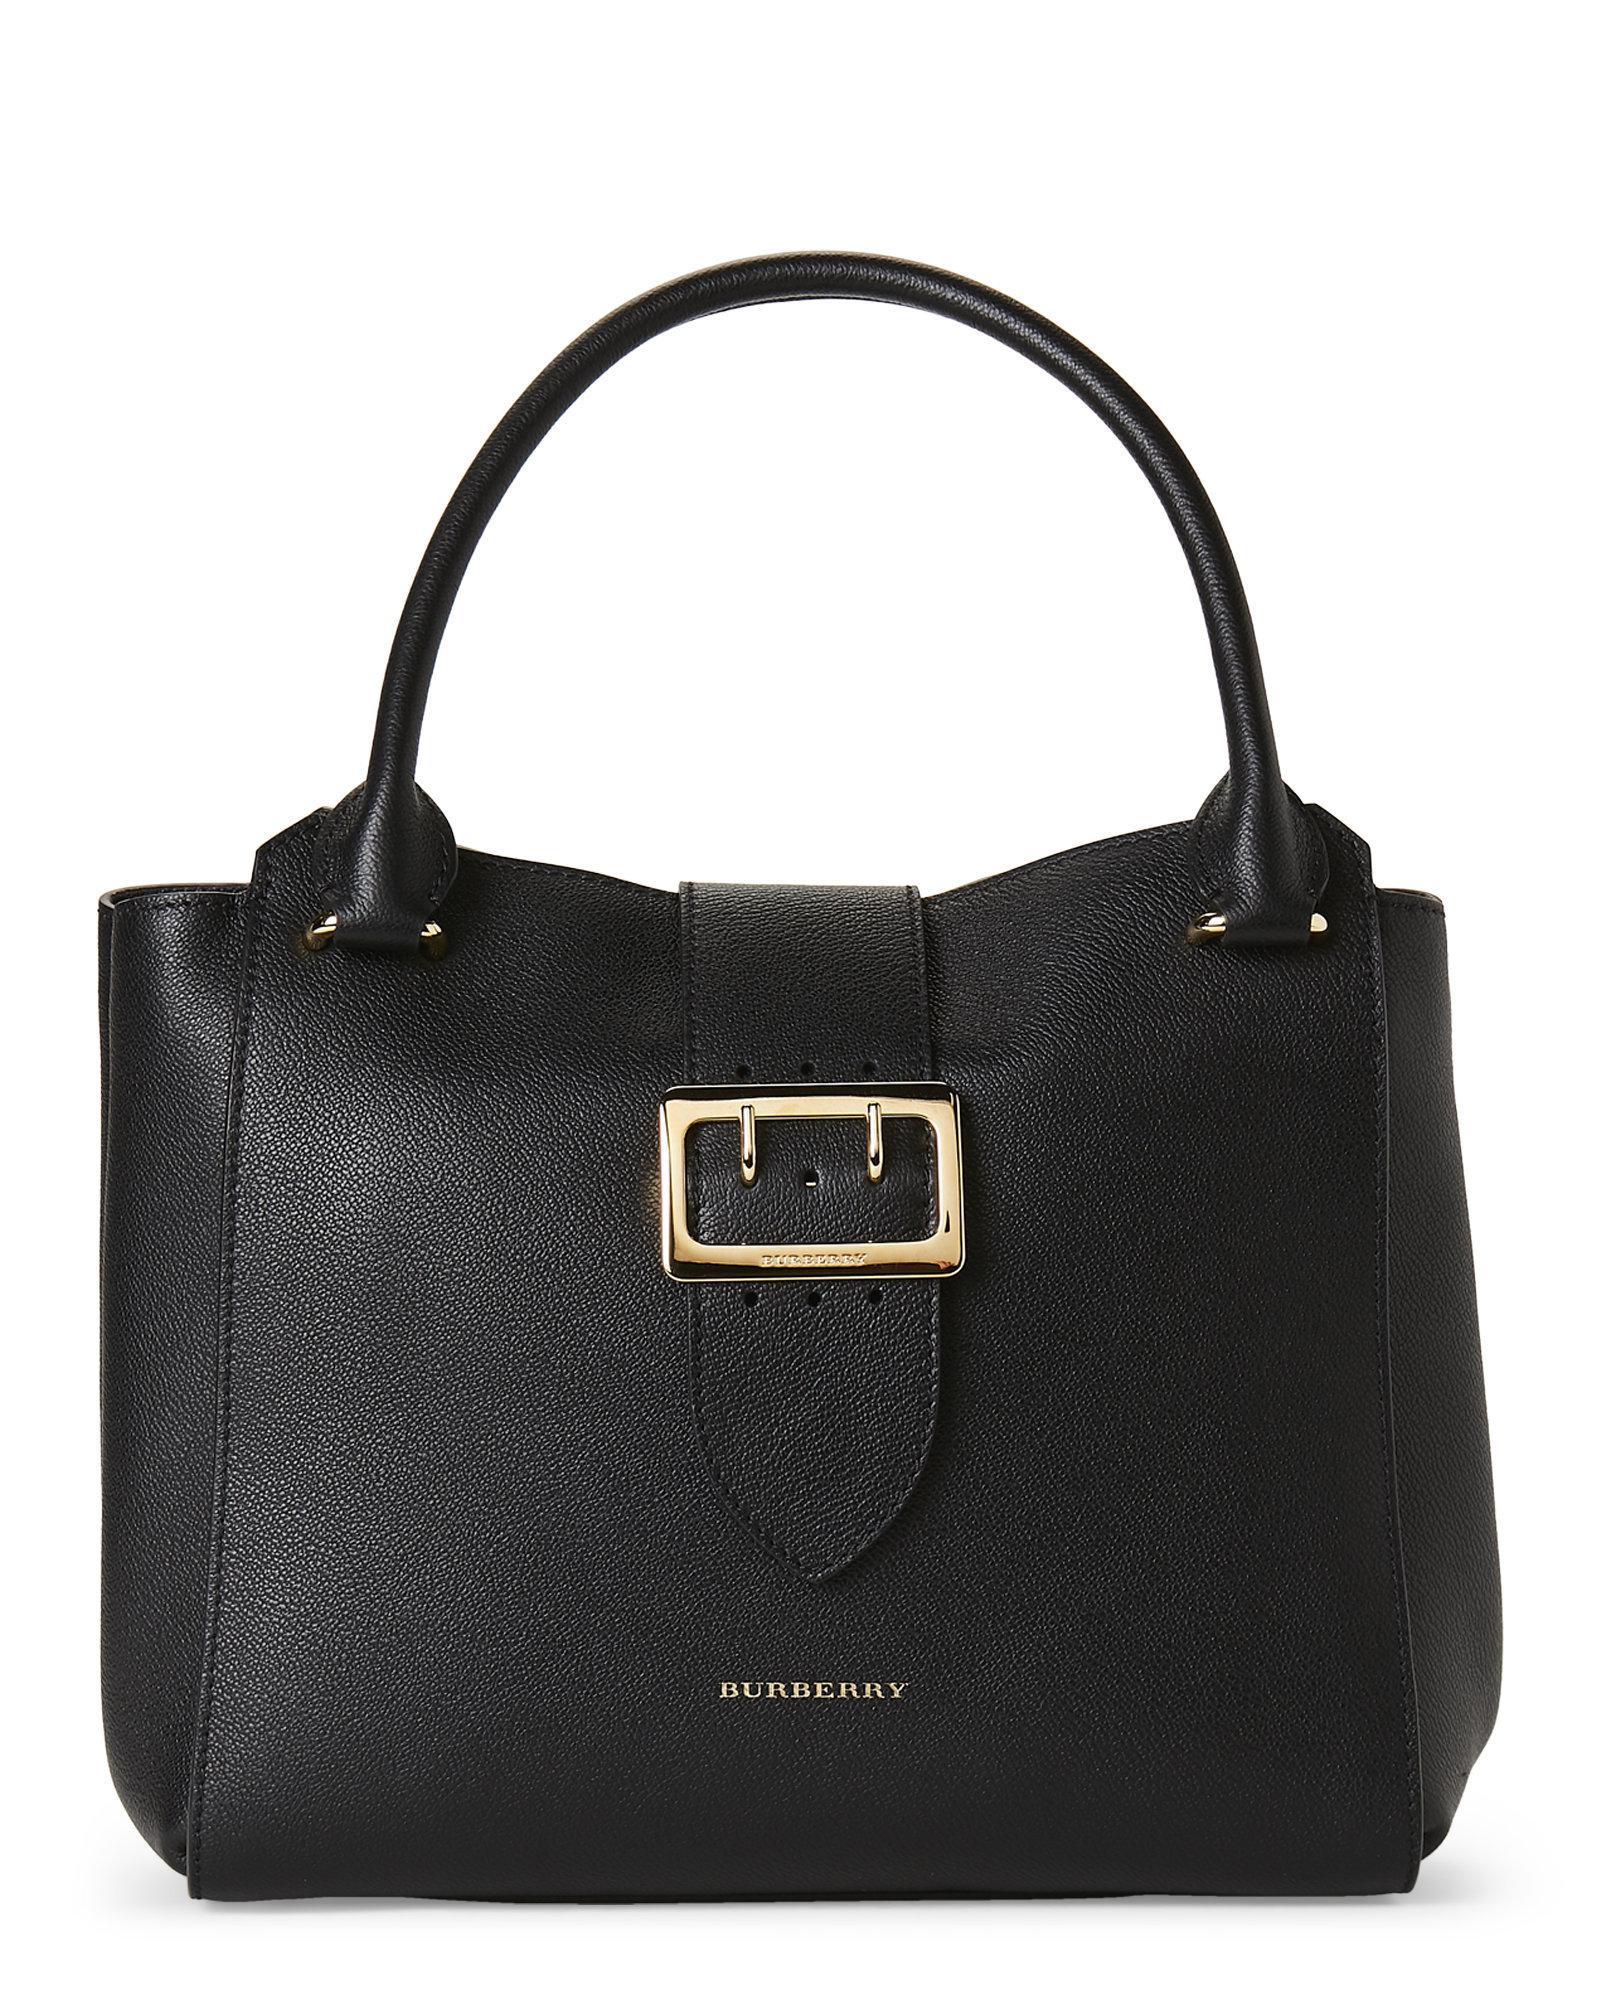 c6bc7a0505b8 Lyst - Burberry Black Leather Medium Buckle Tote in Black